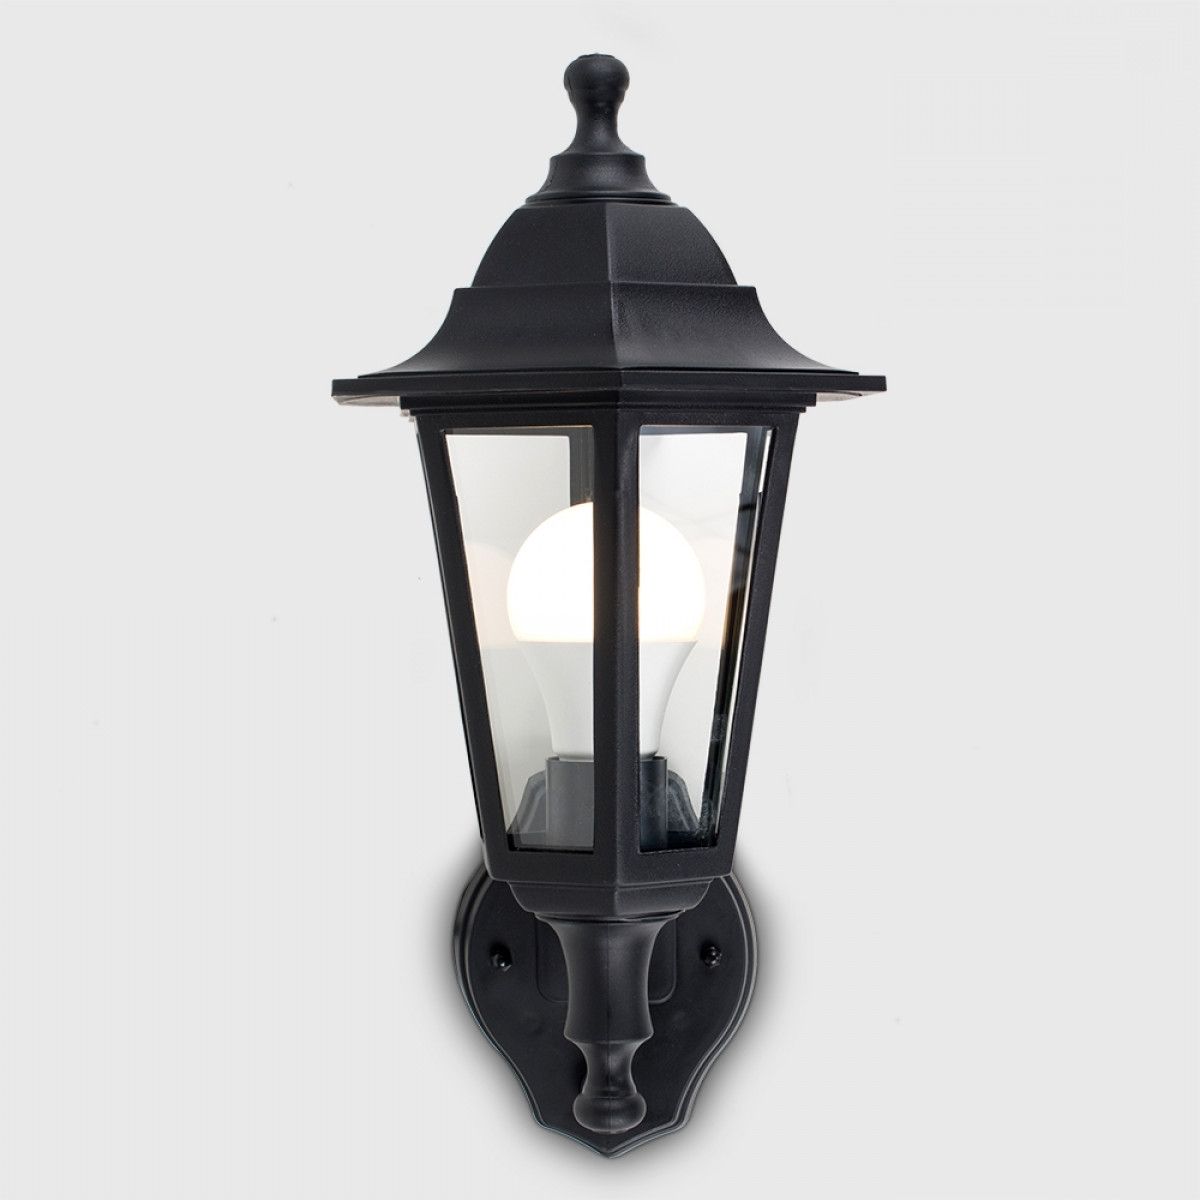 Newest Outdoor Lanterns With Pir Pertaining To Black Mayfair Pir Ip44 Outdoor Lantern (Gallery 15 of 20)